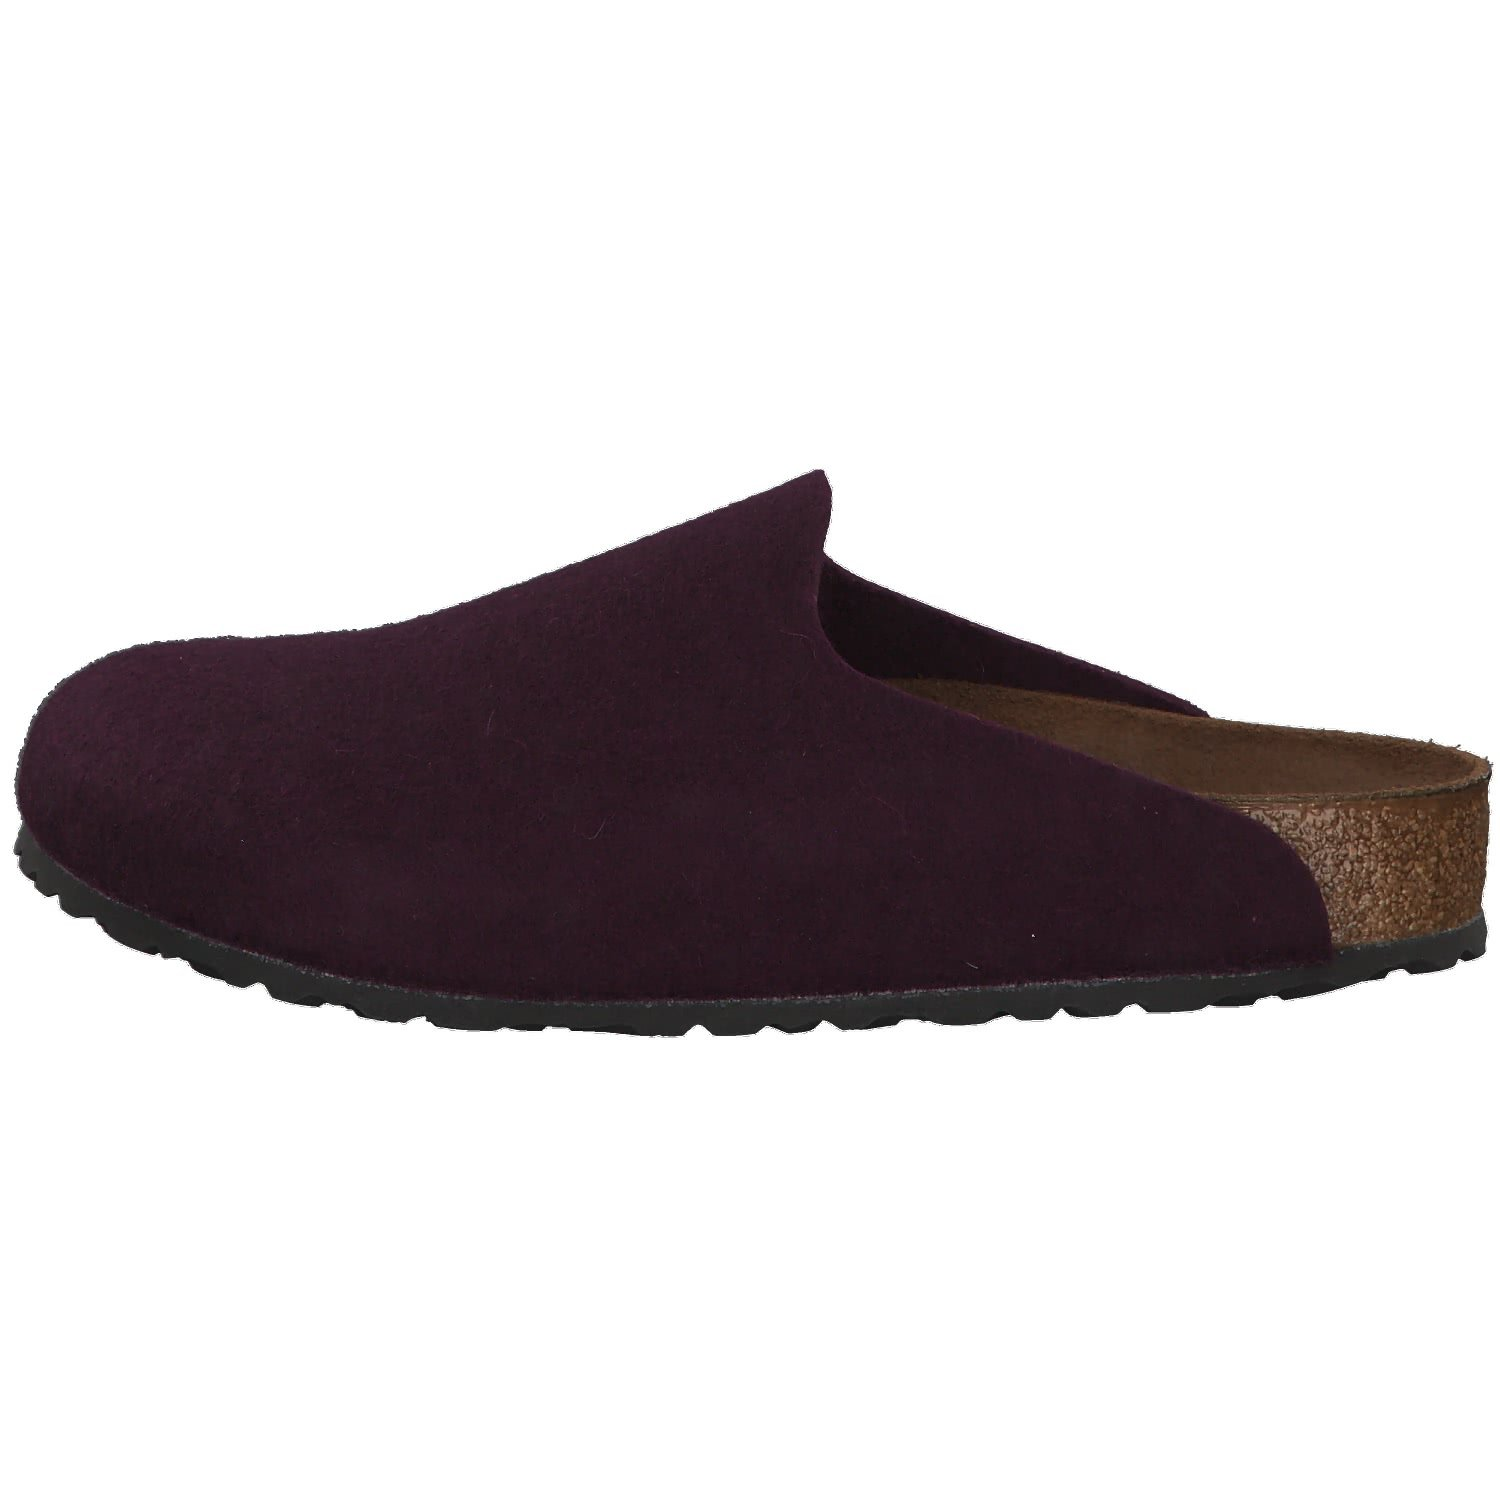 2ea146cc5b85 Birkenstock Amsterdam 1011791 (Reg) Ladies Felt Clog Slippers Melange  Aubergine  Amazon.co.uk  Shoes   Bags